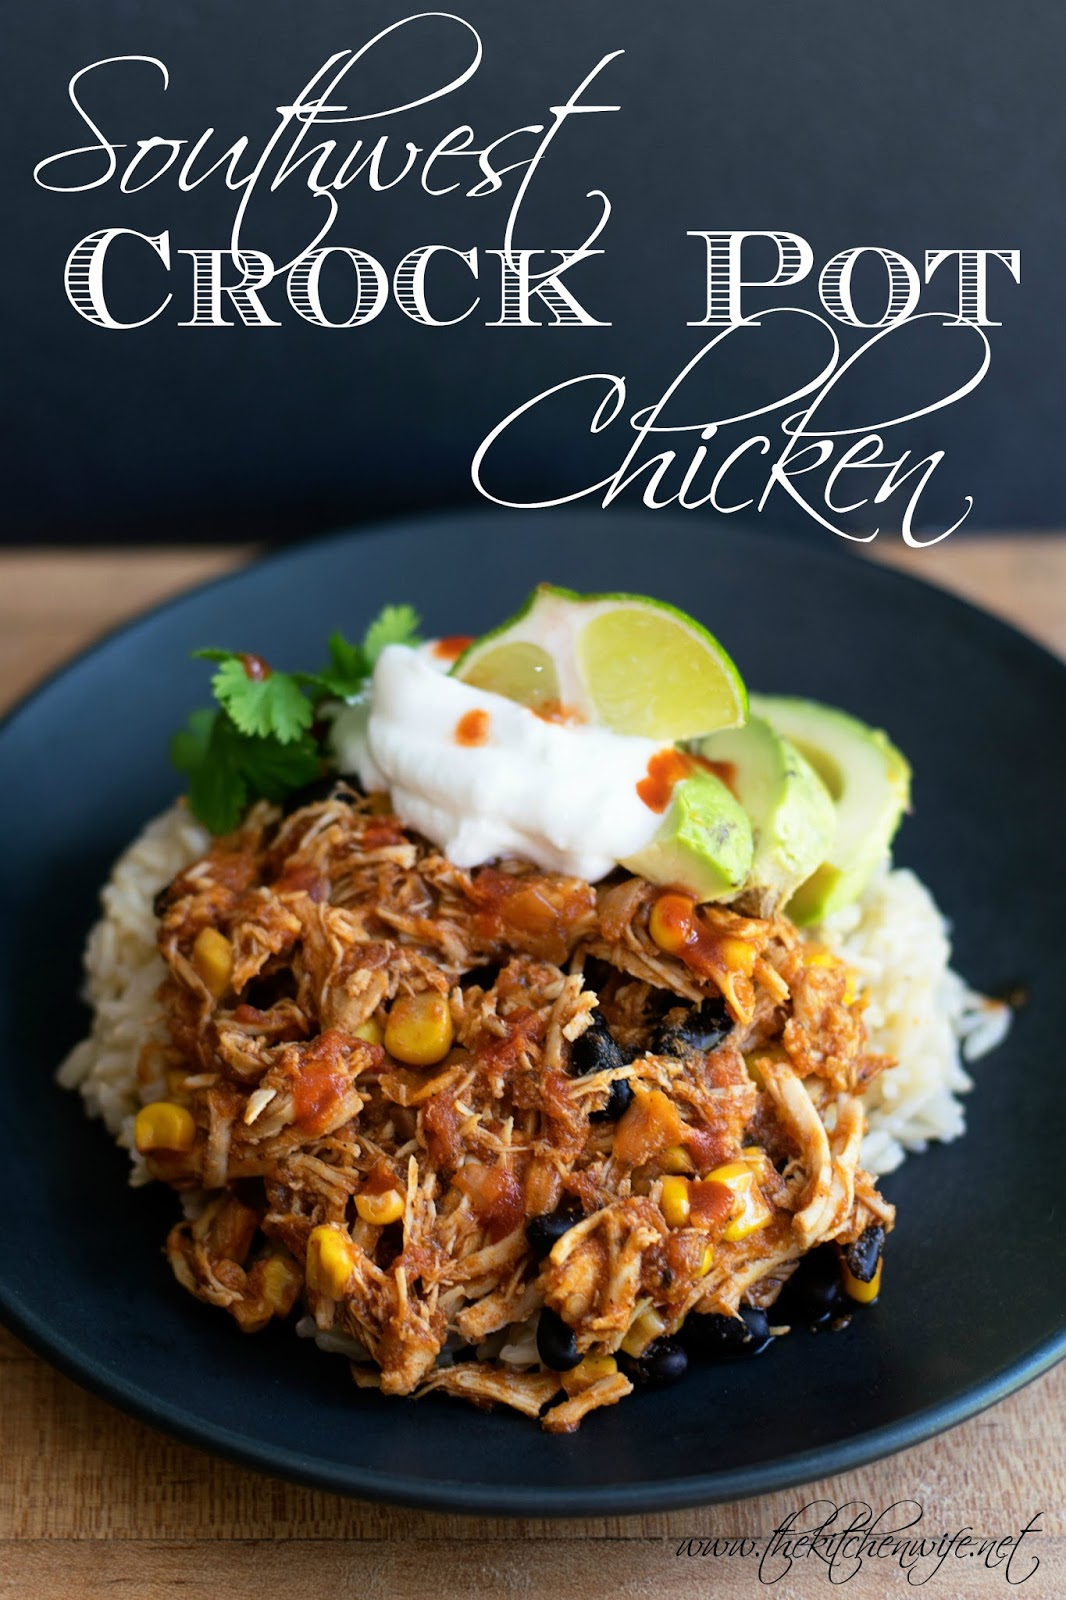 Easy Southwest Crock Pot Chicken Recipe - The Kitchen Wife-5370